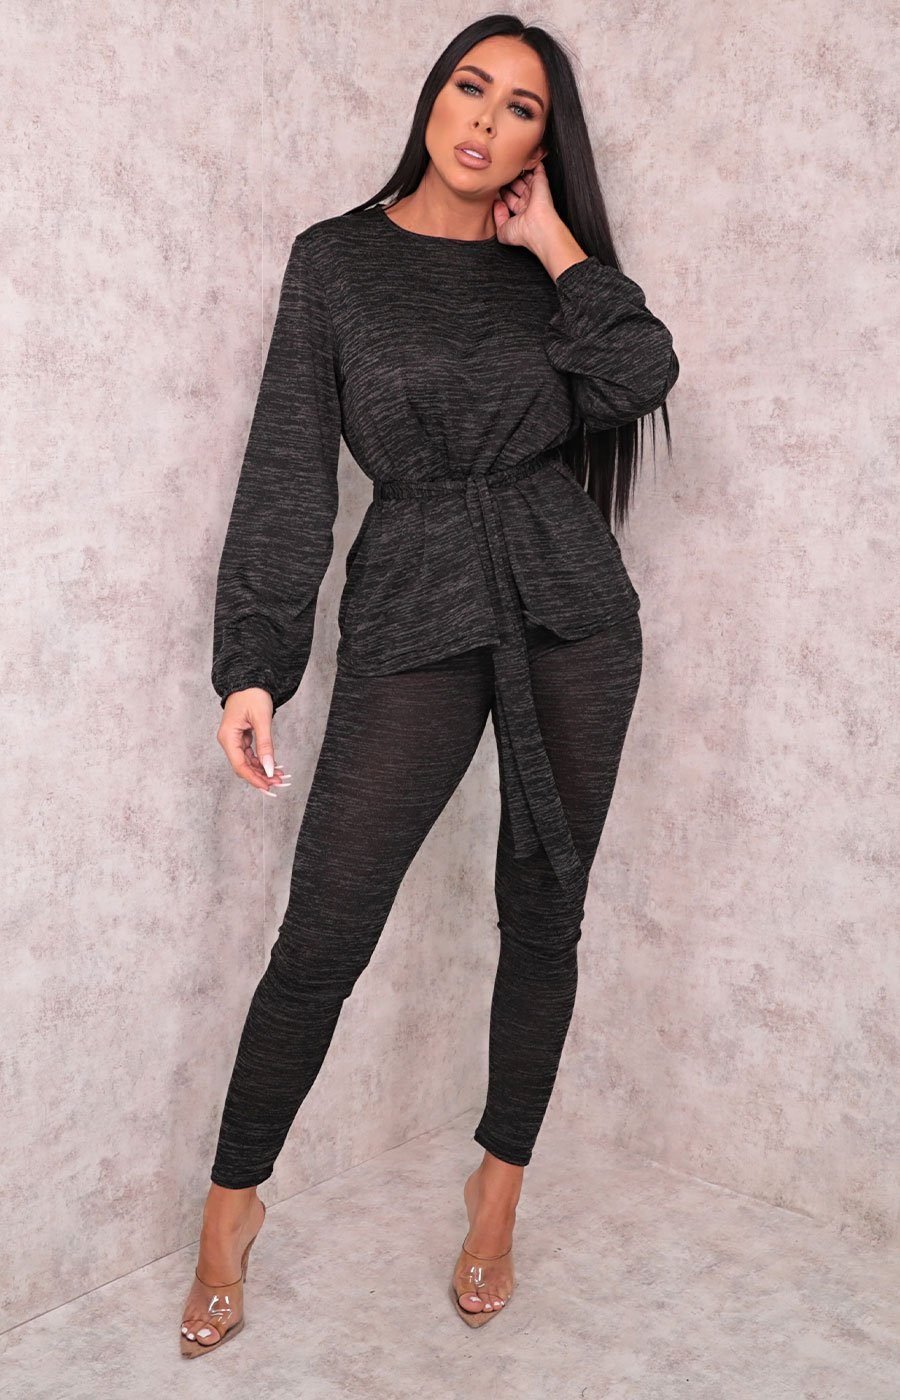 Black Tie Front Cuffed Sleeve Leggings Loungewear Set - Eliza